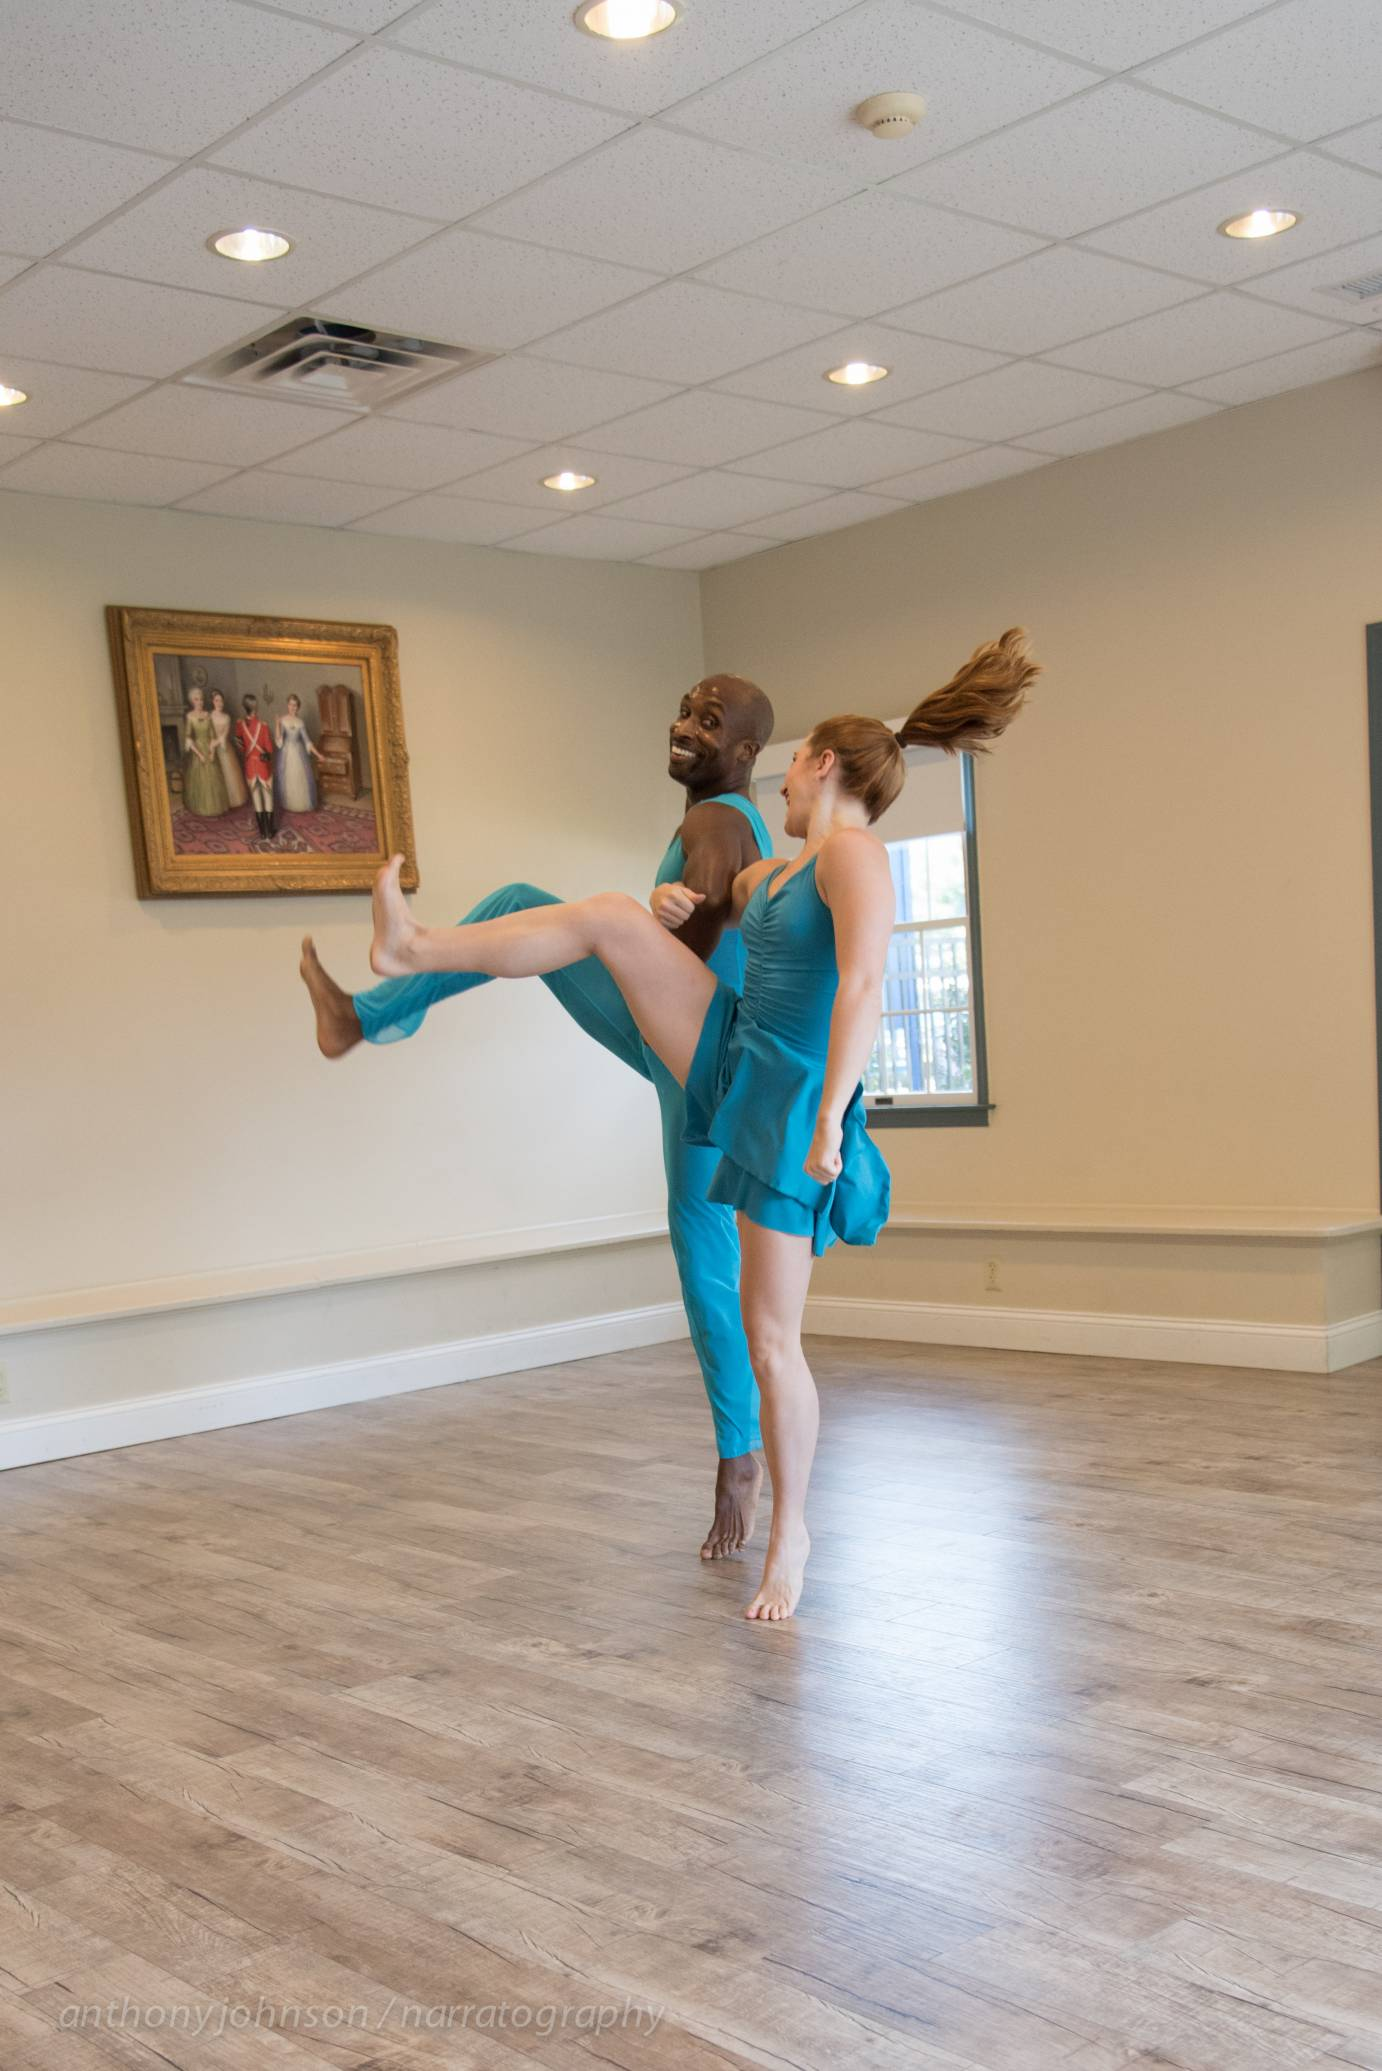 Two dancers perform in a stark gallery space. They wear bright blue costumes as they smile at one another.